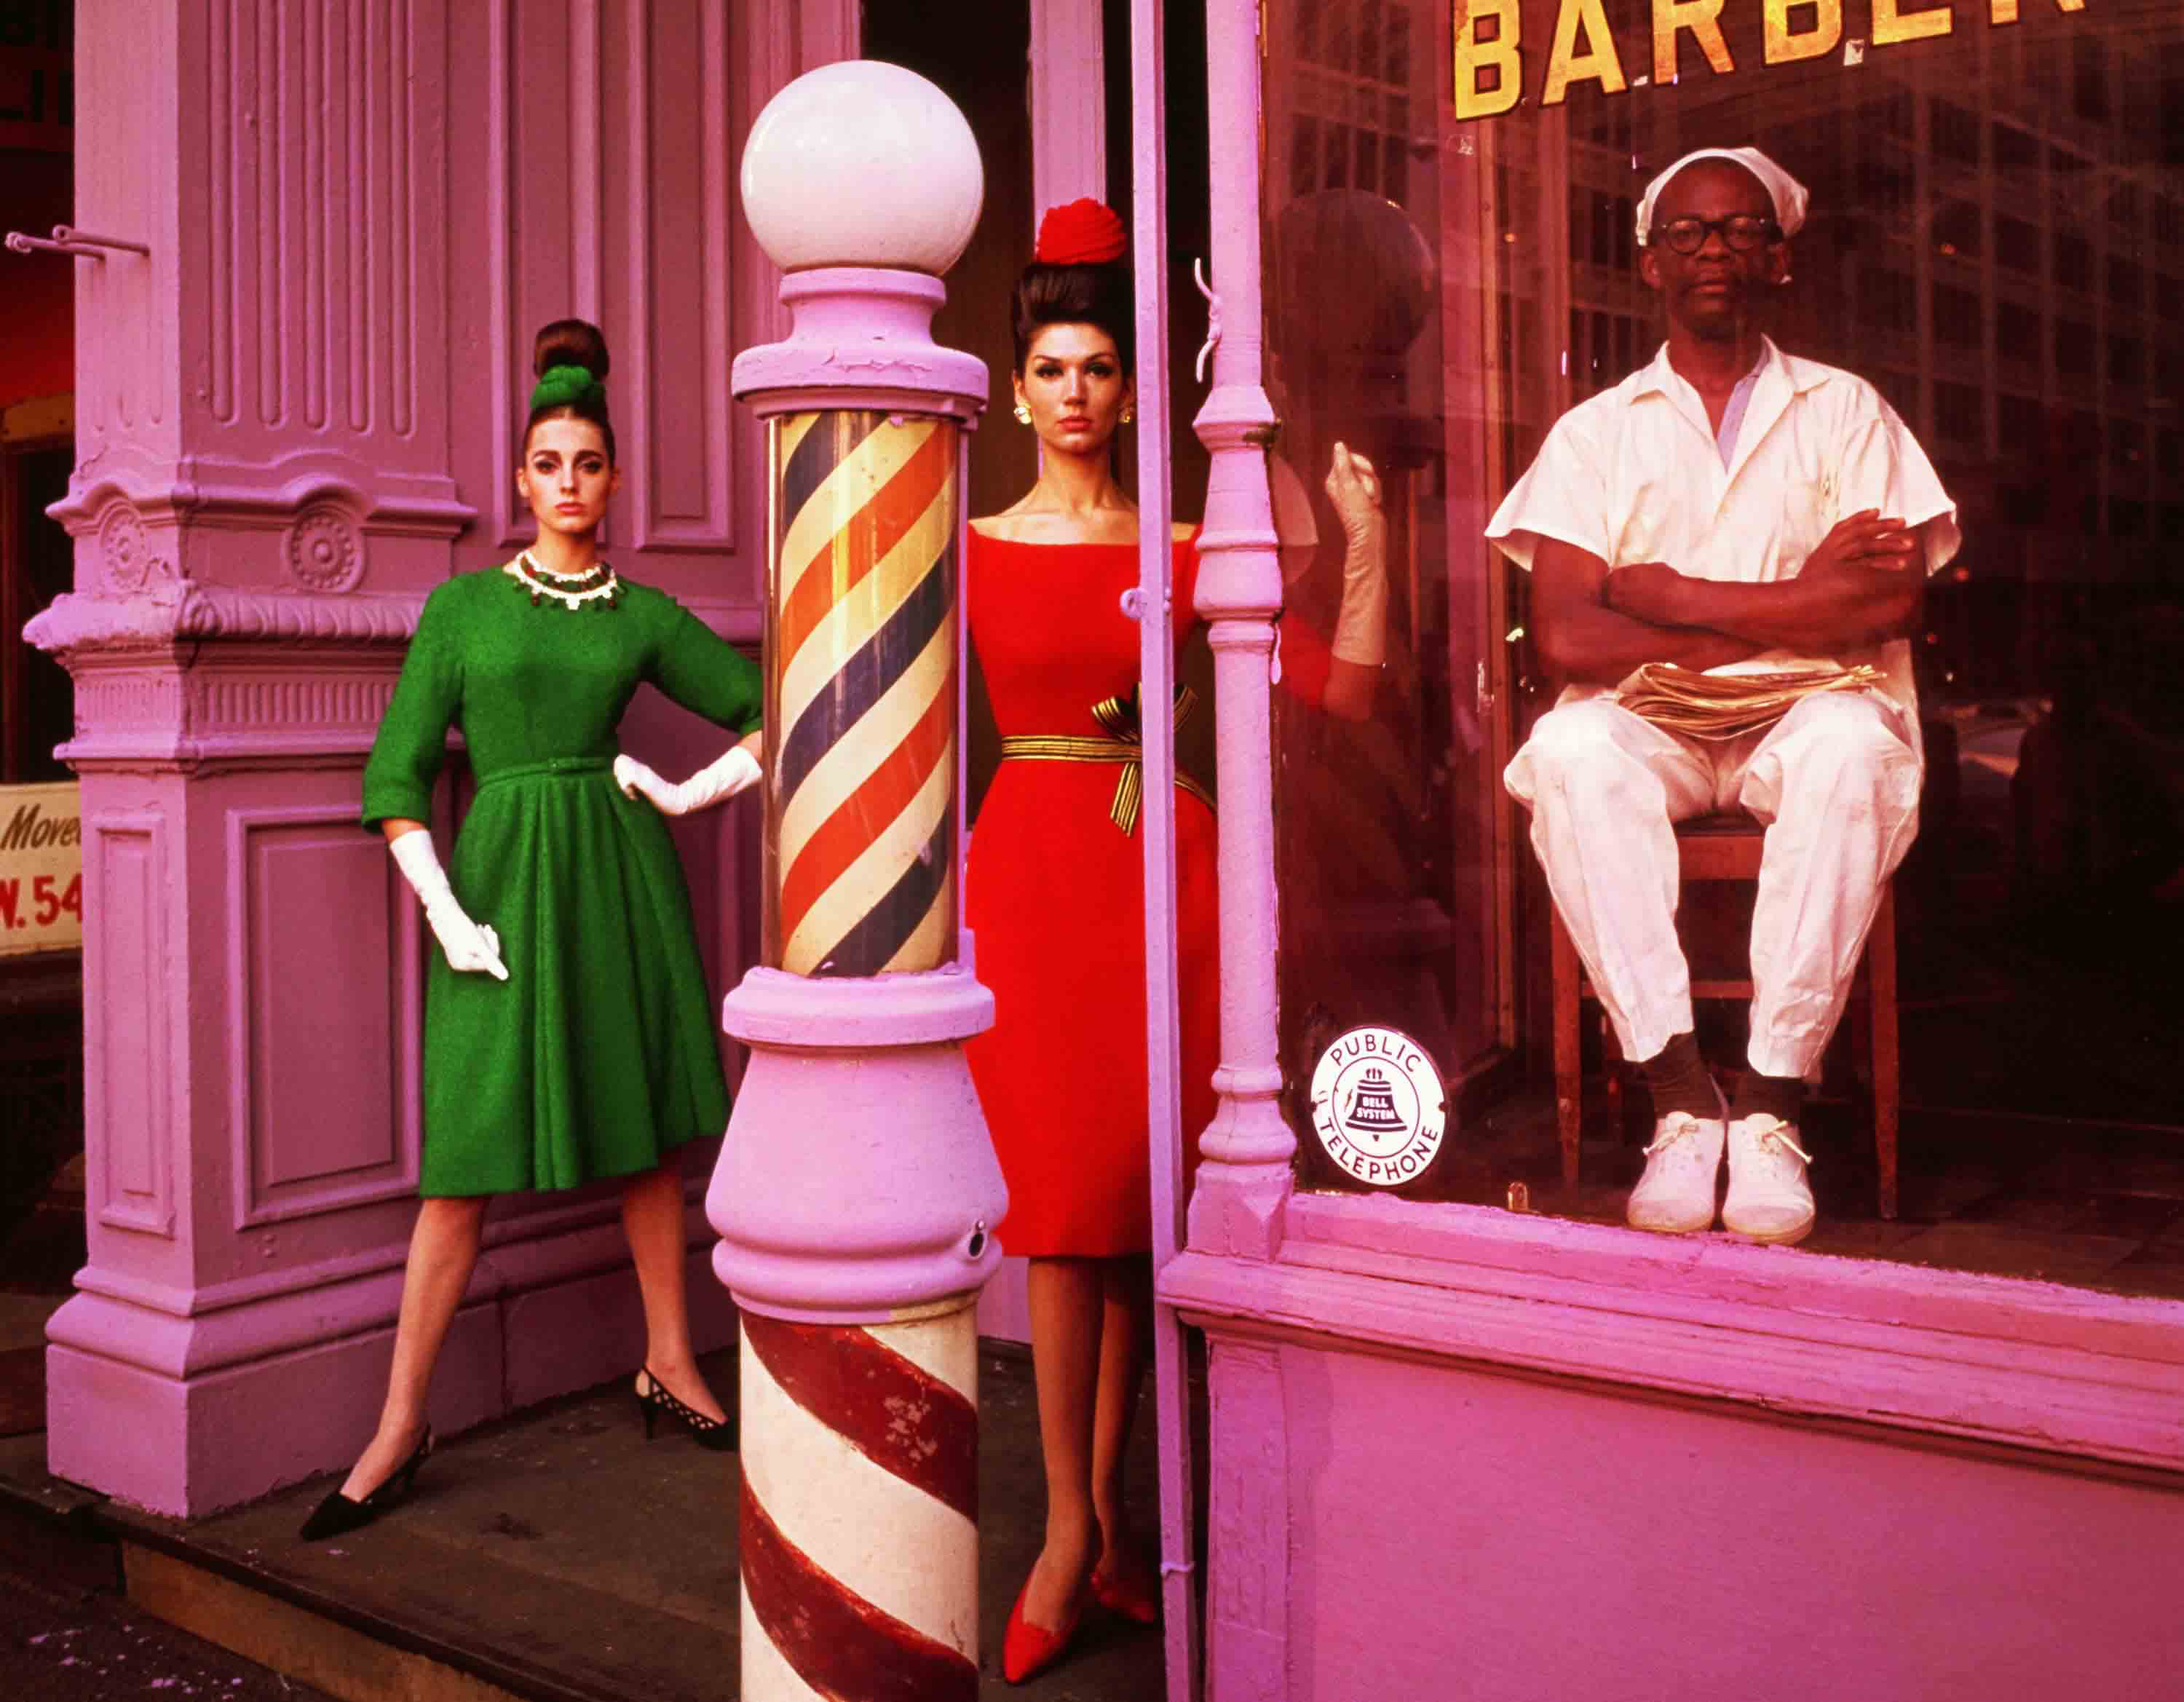 william-klein-barber-shop-news